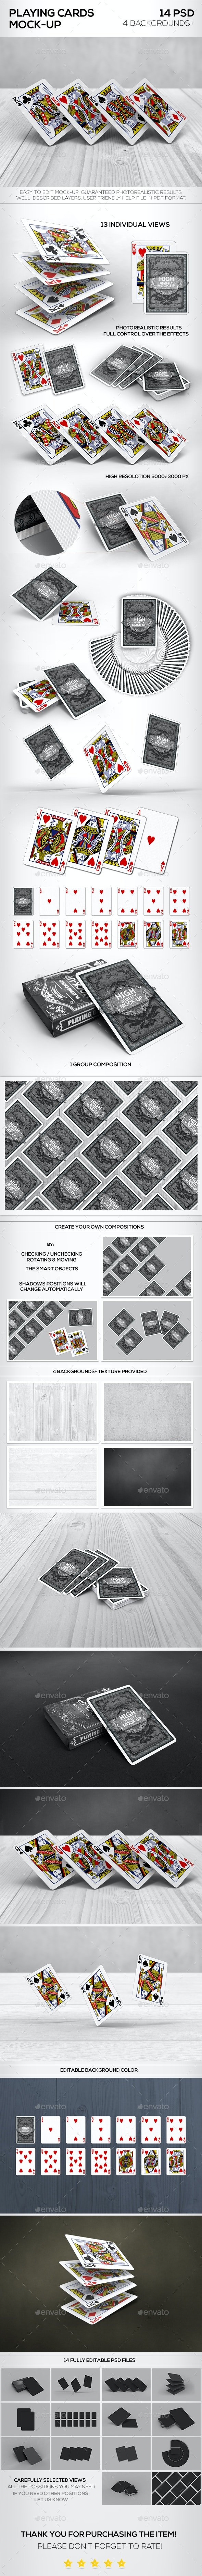 Playing Cards Mock-up - Product Mock-Ups Graphics